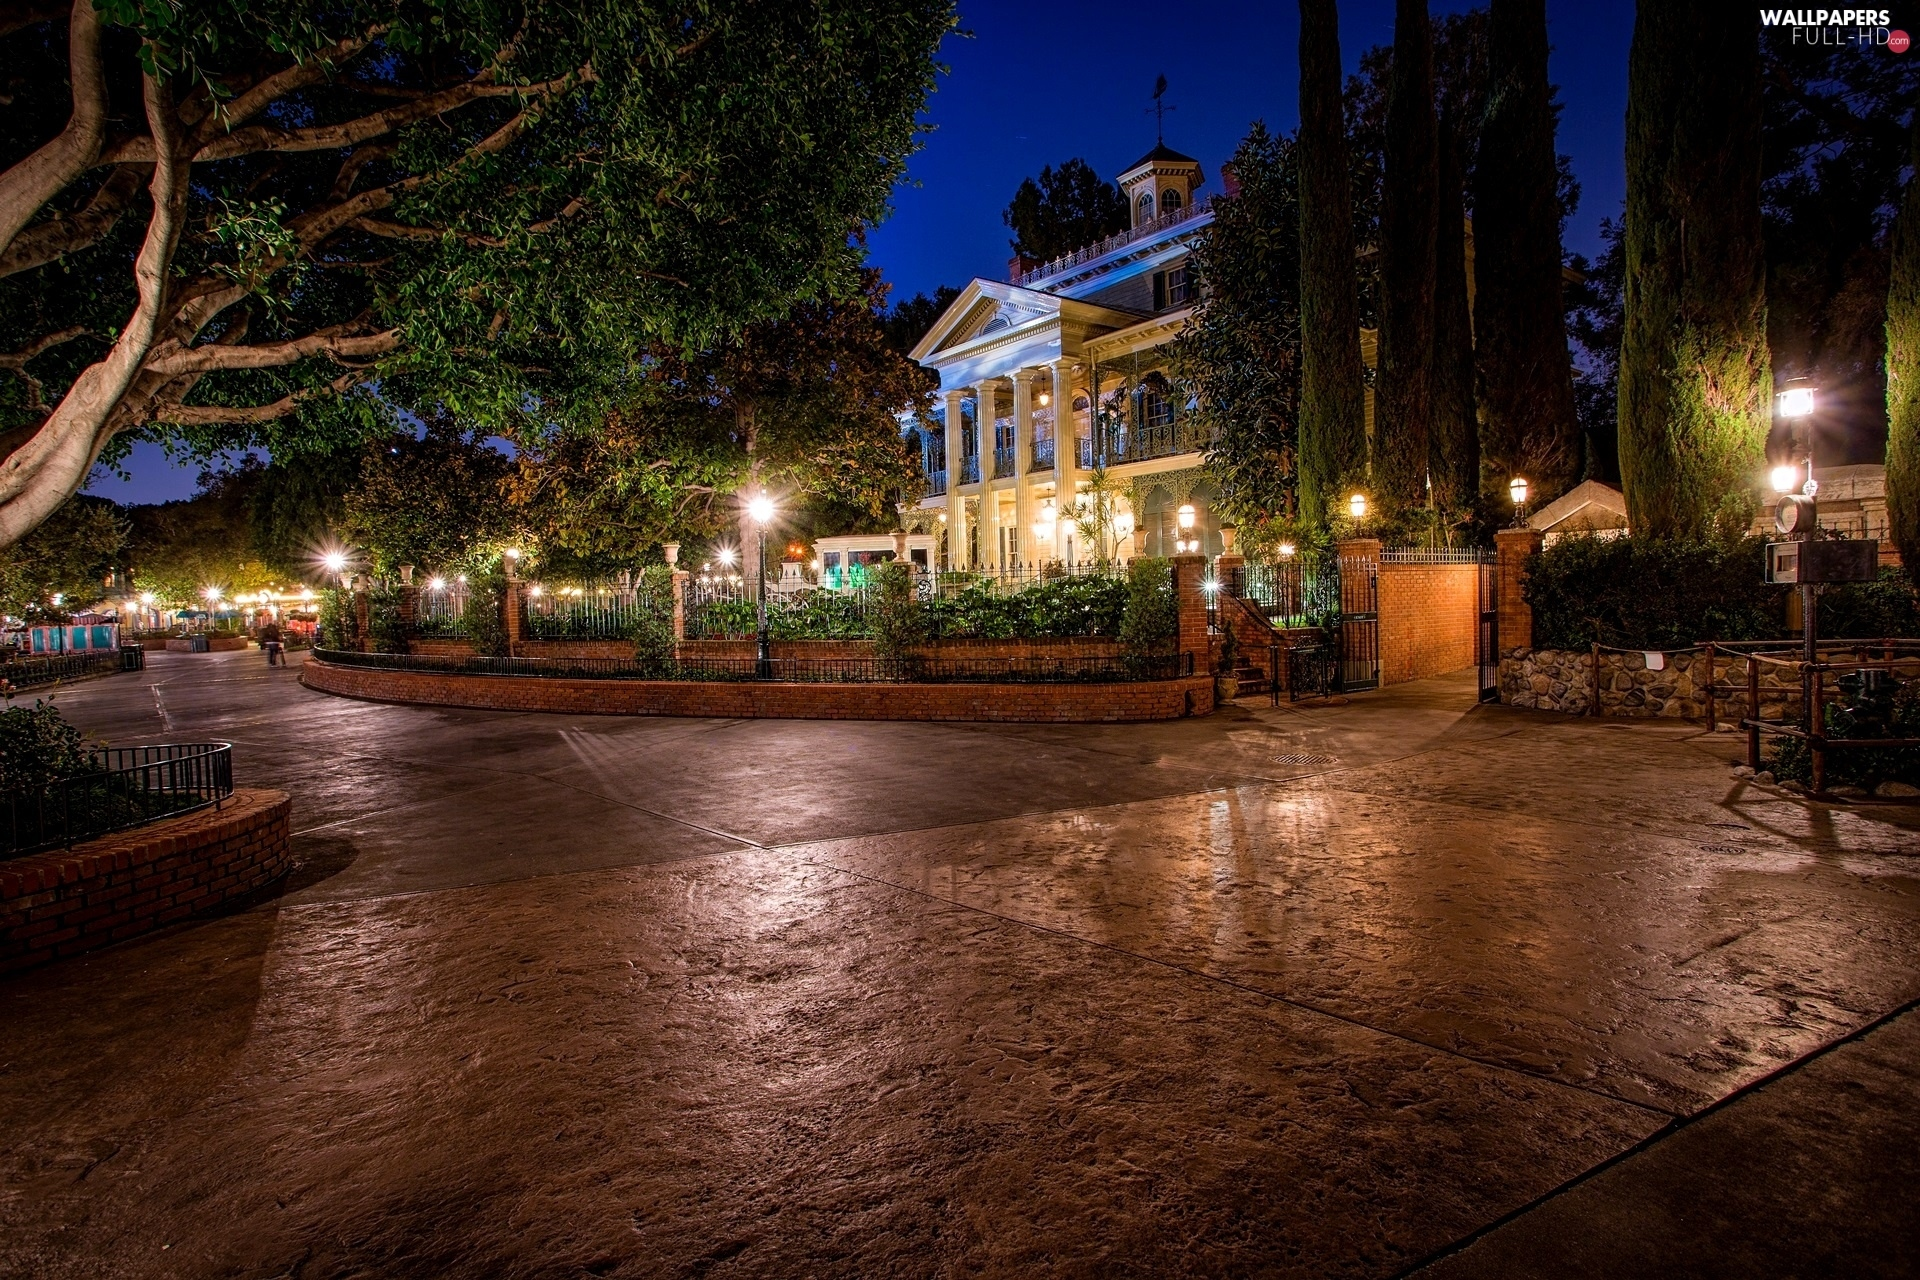 HDR, Night, Town, USA, California, Disneyland, Anaheim